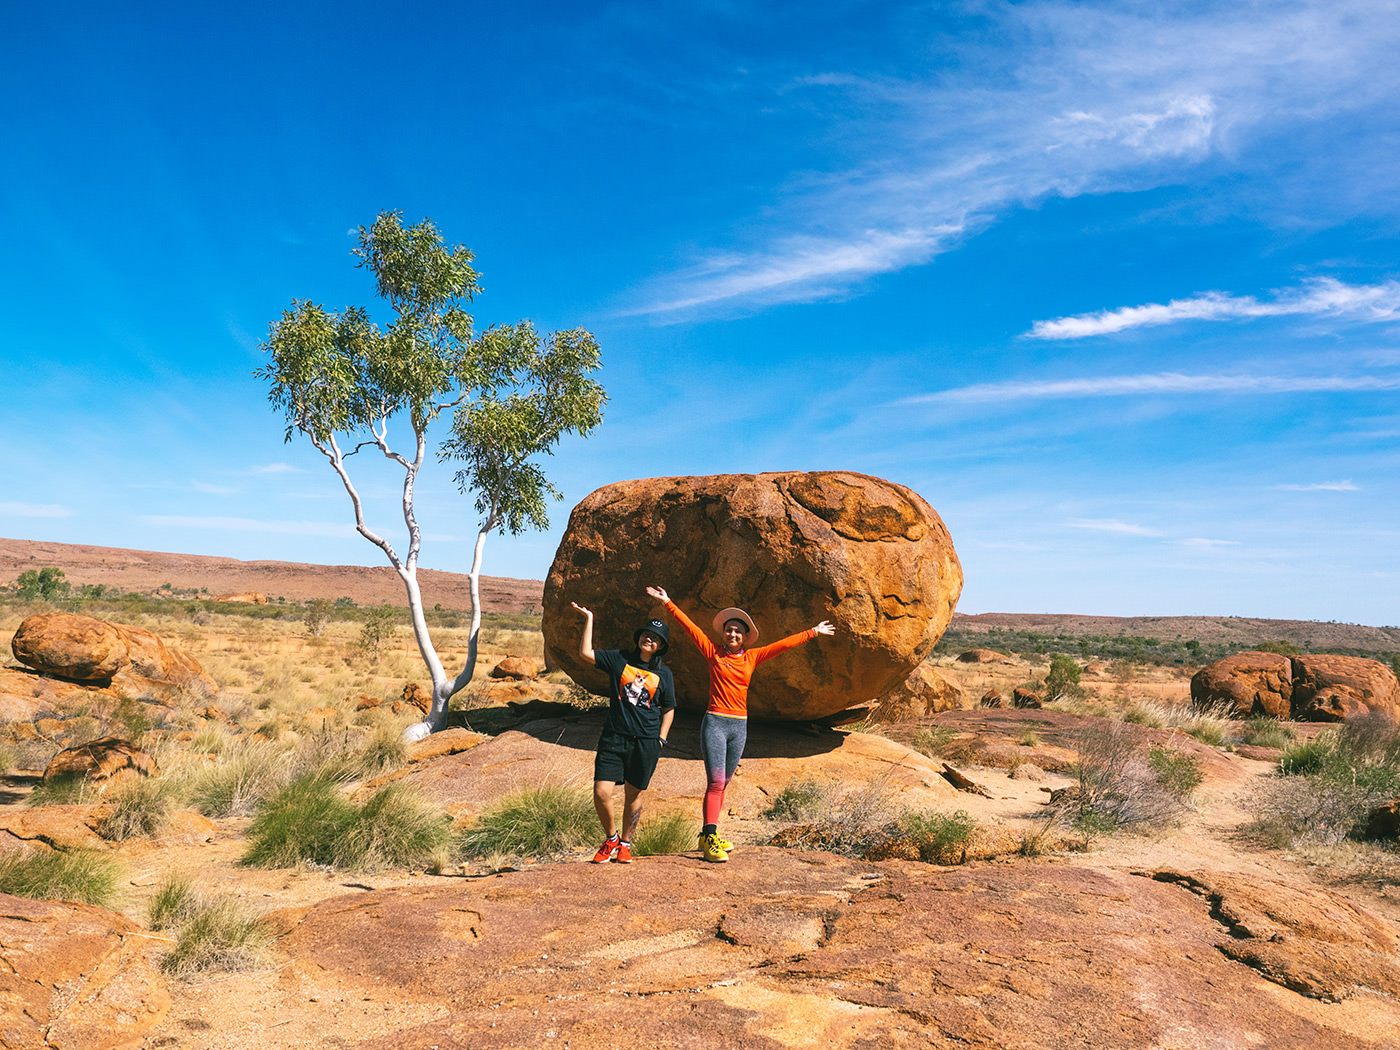 NT Australia - Karlu Karlu - Just the 2 of us exploring the rest of Devils Marbles